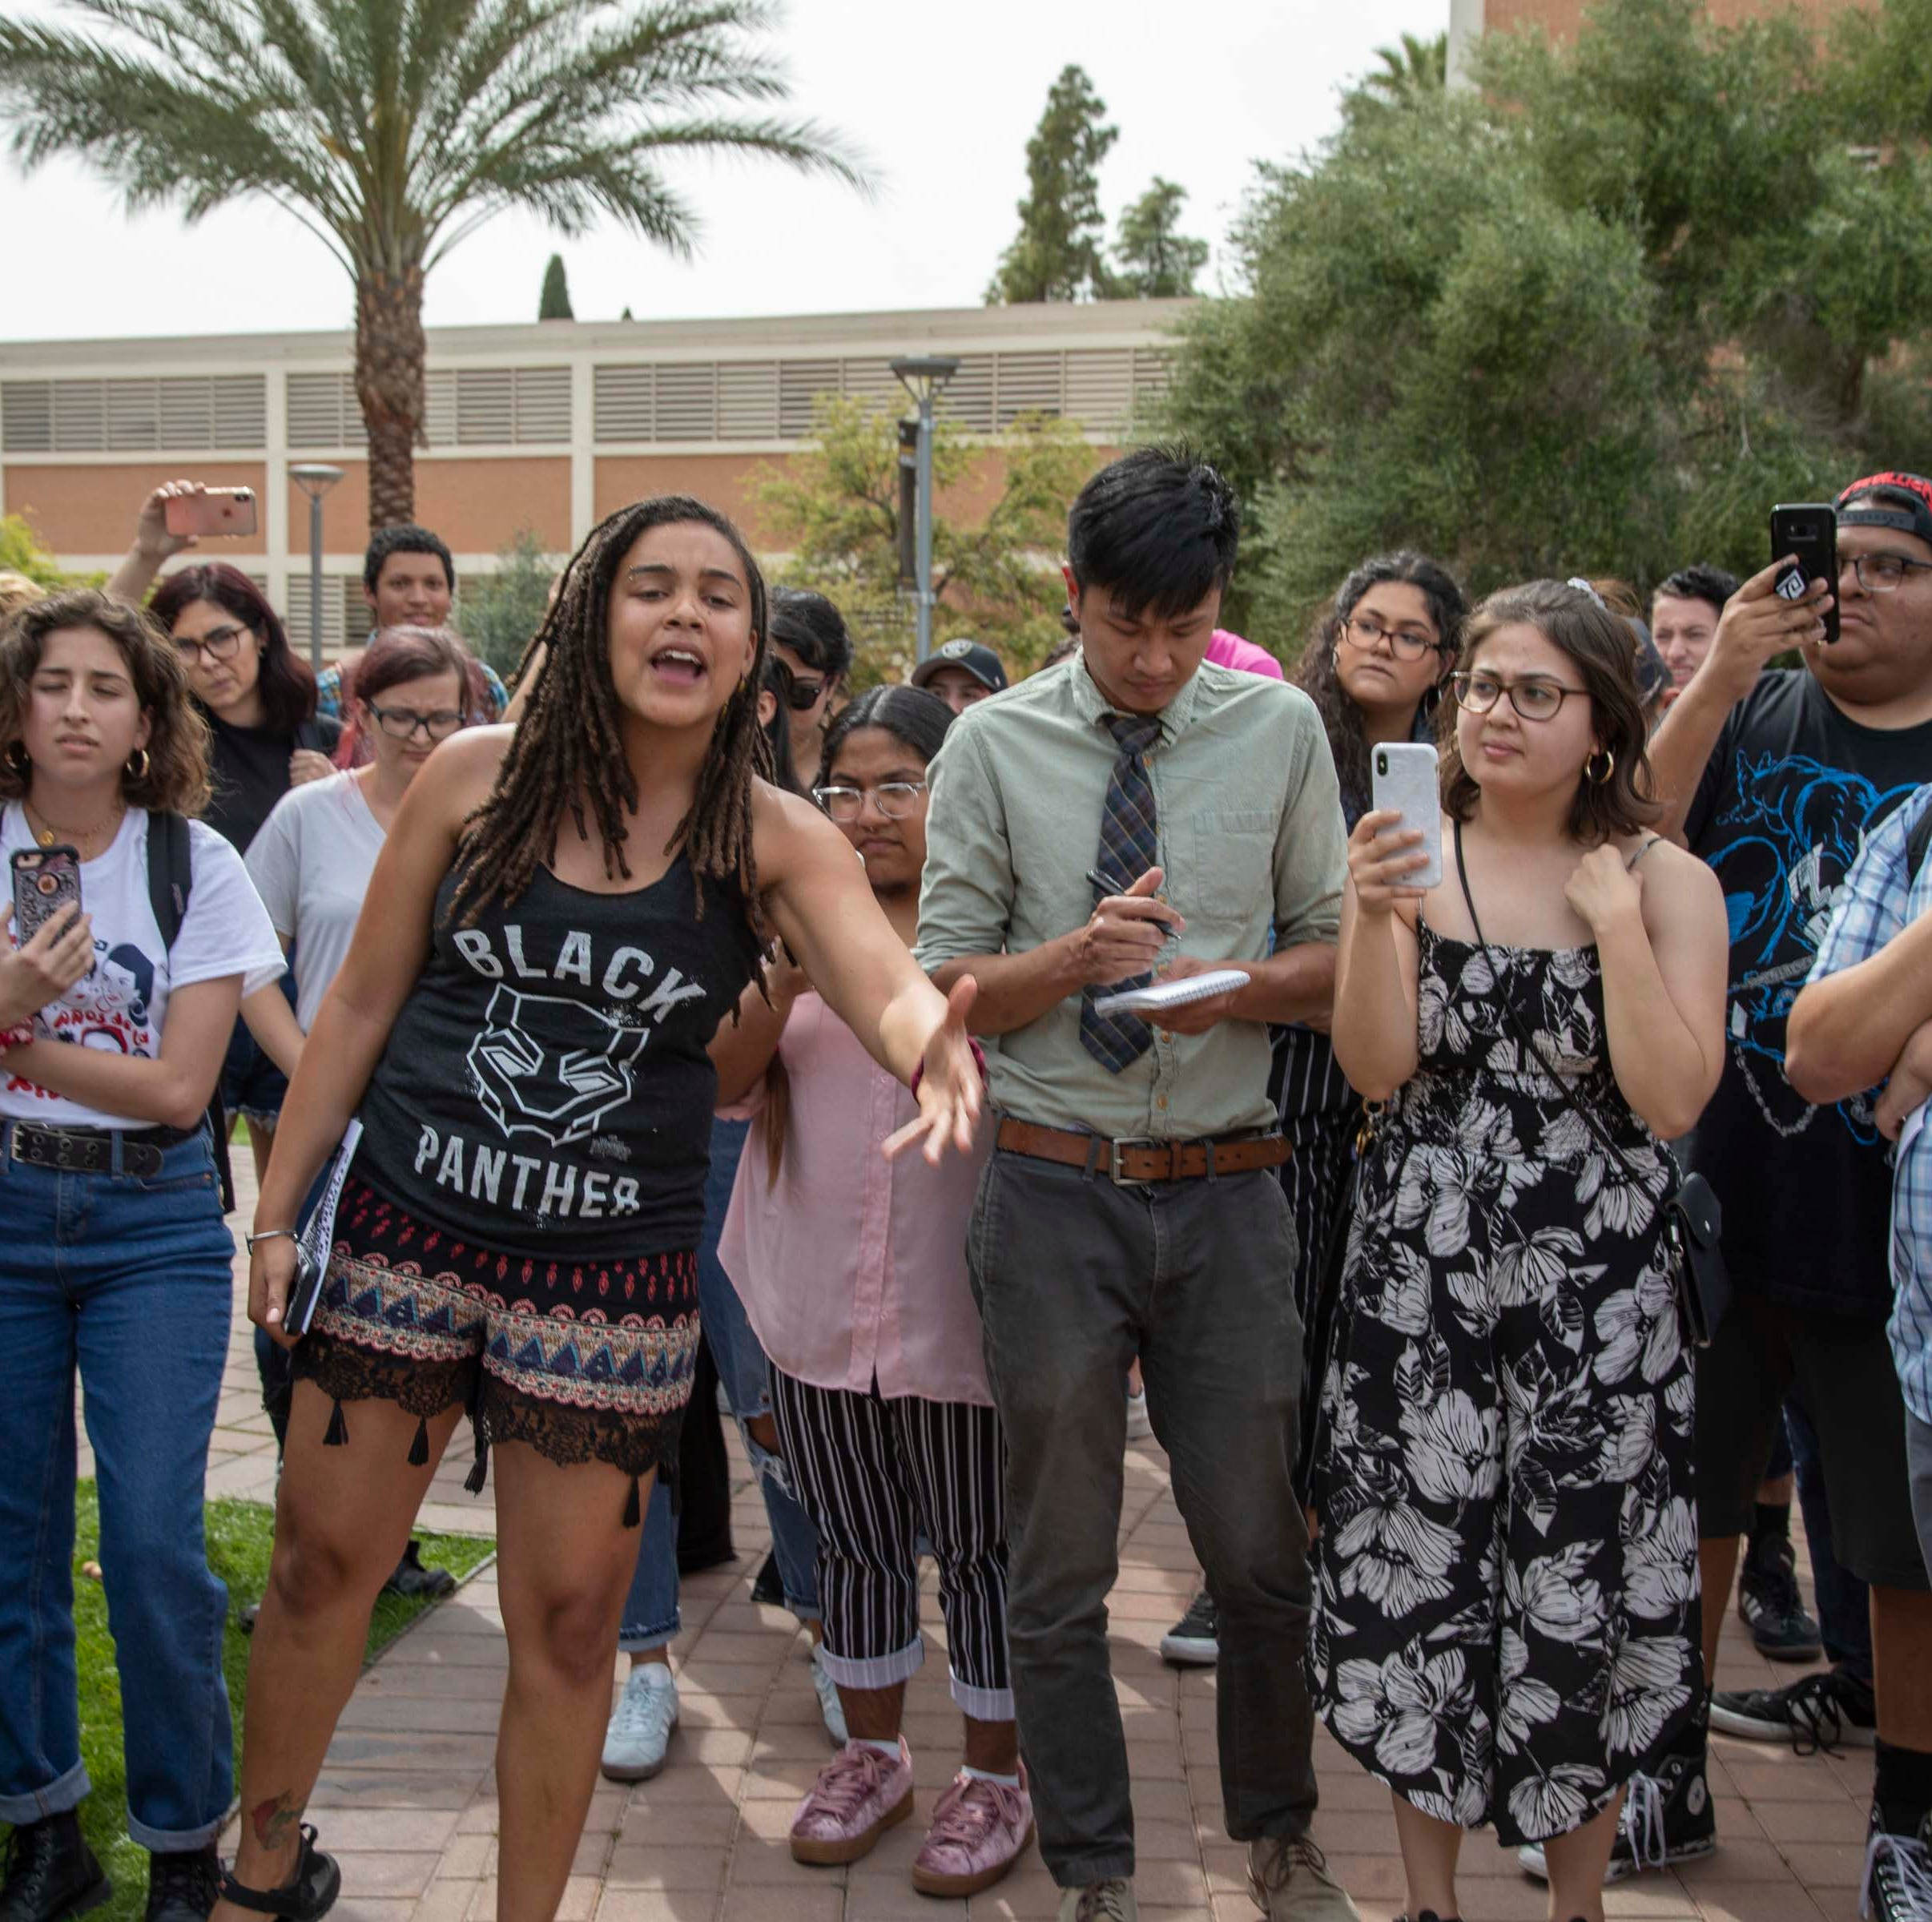 Students confront leaders of Republican group at ASU after racist, anti-Semitic postings